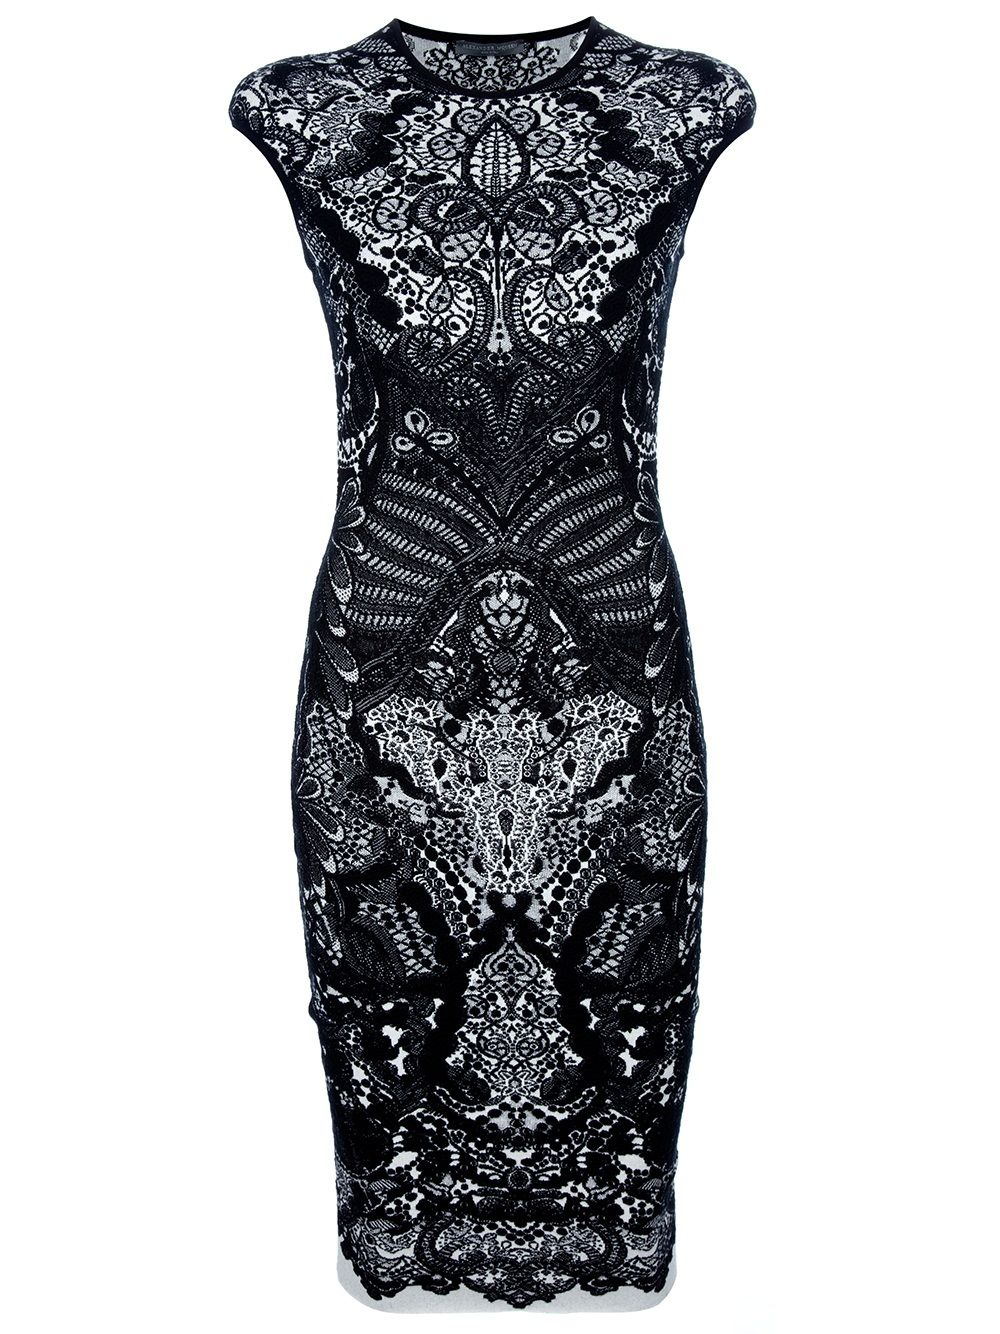 Alexander McQueen...well, not quite *my* style (I do Not Wear Sheath dresses), but lovely nonetheless.